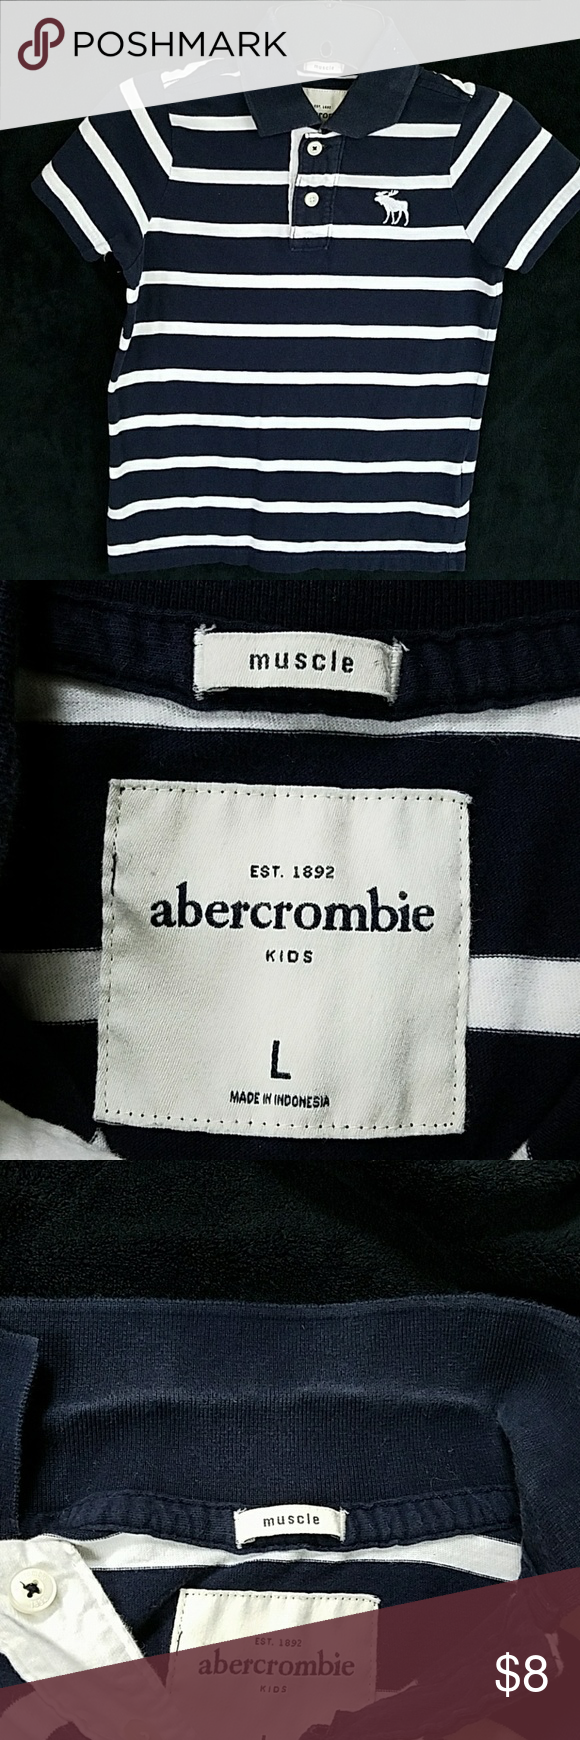 Abercrombie Polo Navy blue striped muscle Abercrombie Polo. Normal wear, a bit of discoloration around the collar as shown in the last picture but cannot be seen when collar is folded down. Abercombie Kids Shirts & Tops Polos